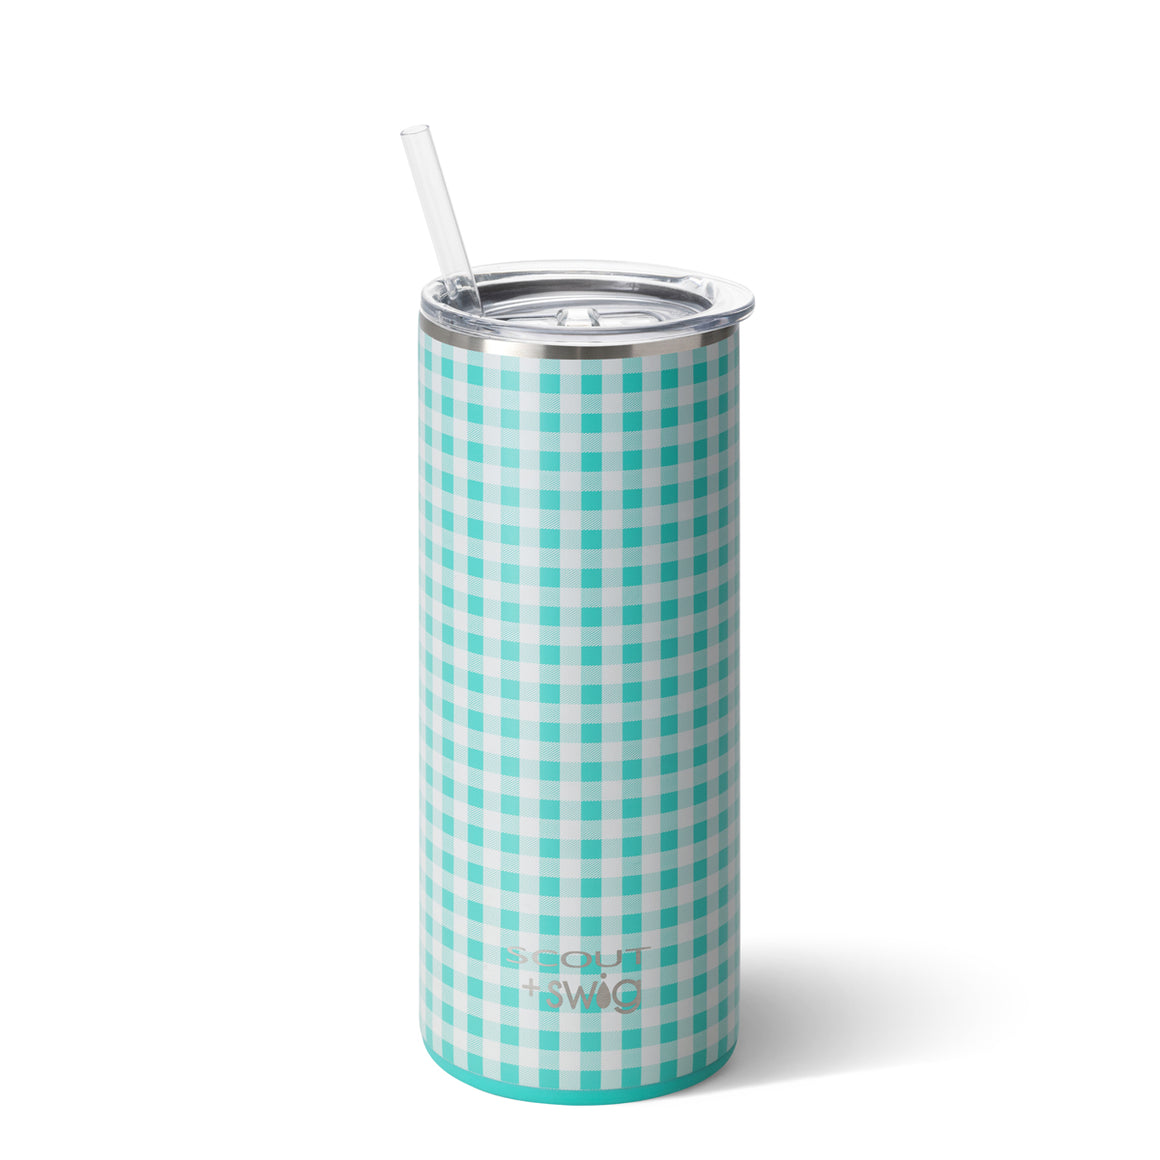 Swig 20oz Tumbler Barnaby Checkham by SCOUT - Coming April 2020 - The Preppy Bunny